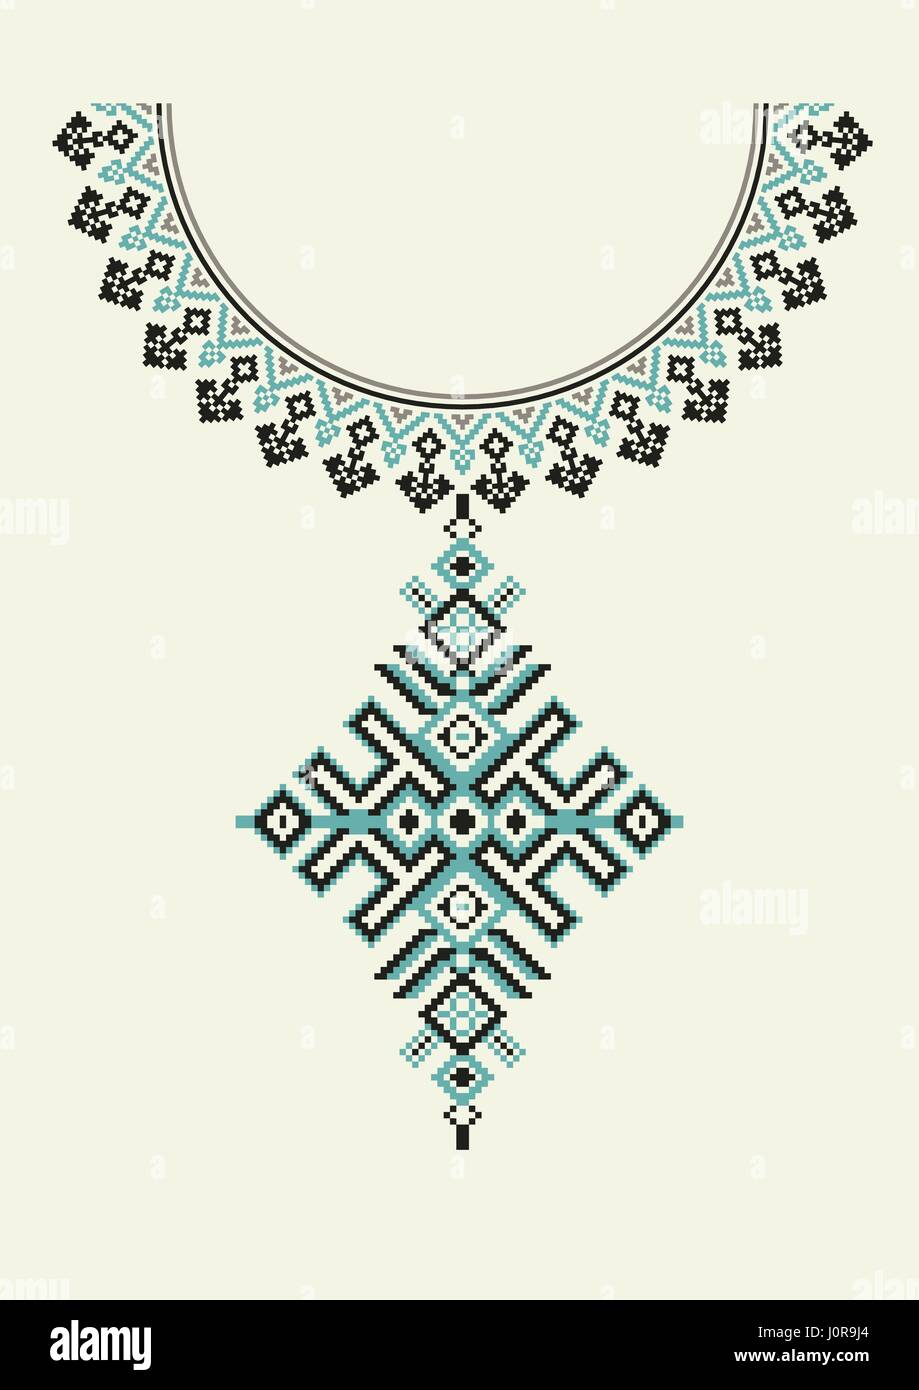 African american stock vector images alamy vector aztec necklace embroidery for fashion women pixel tribal pattern for print or web design buycottarizona Images